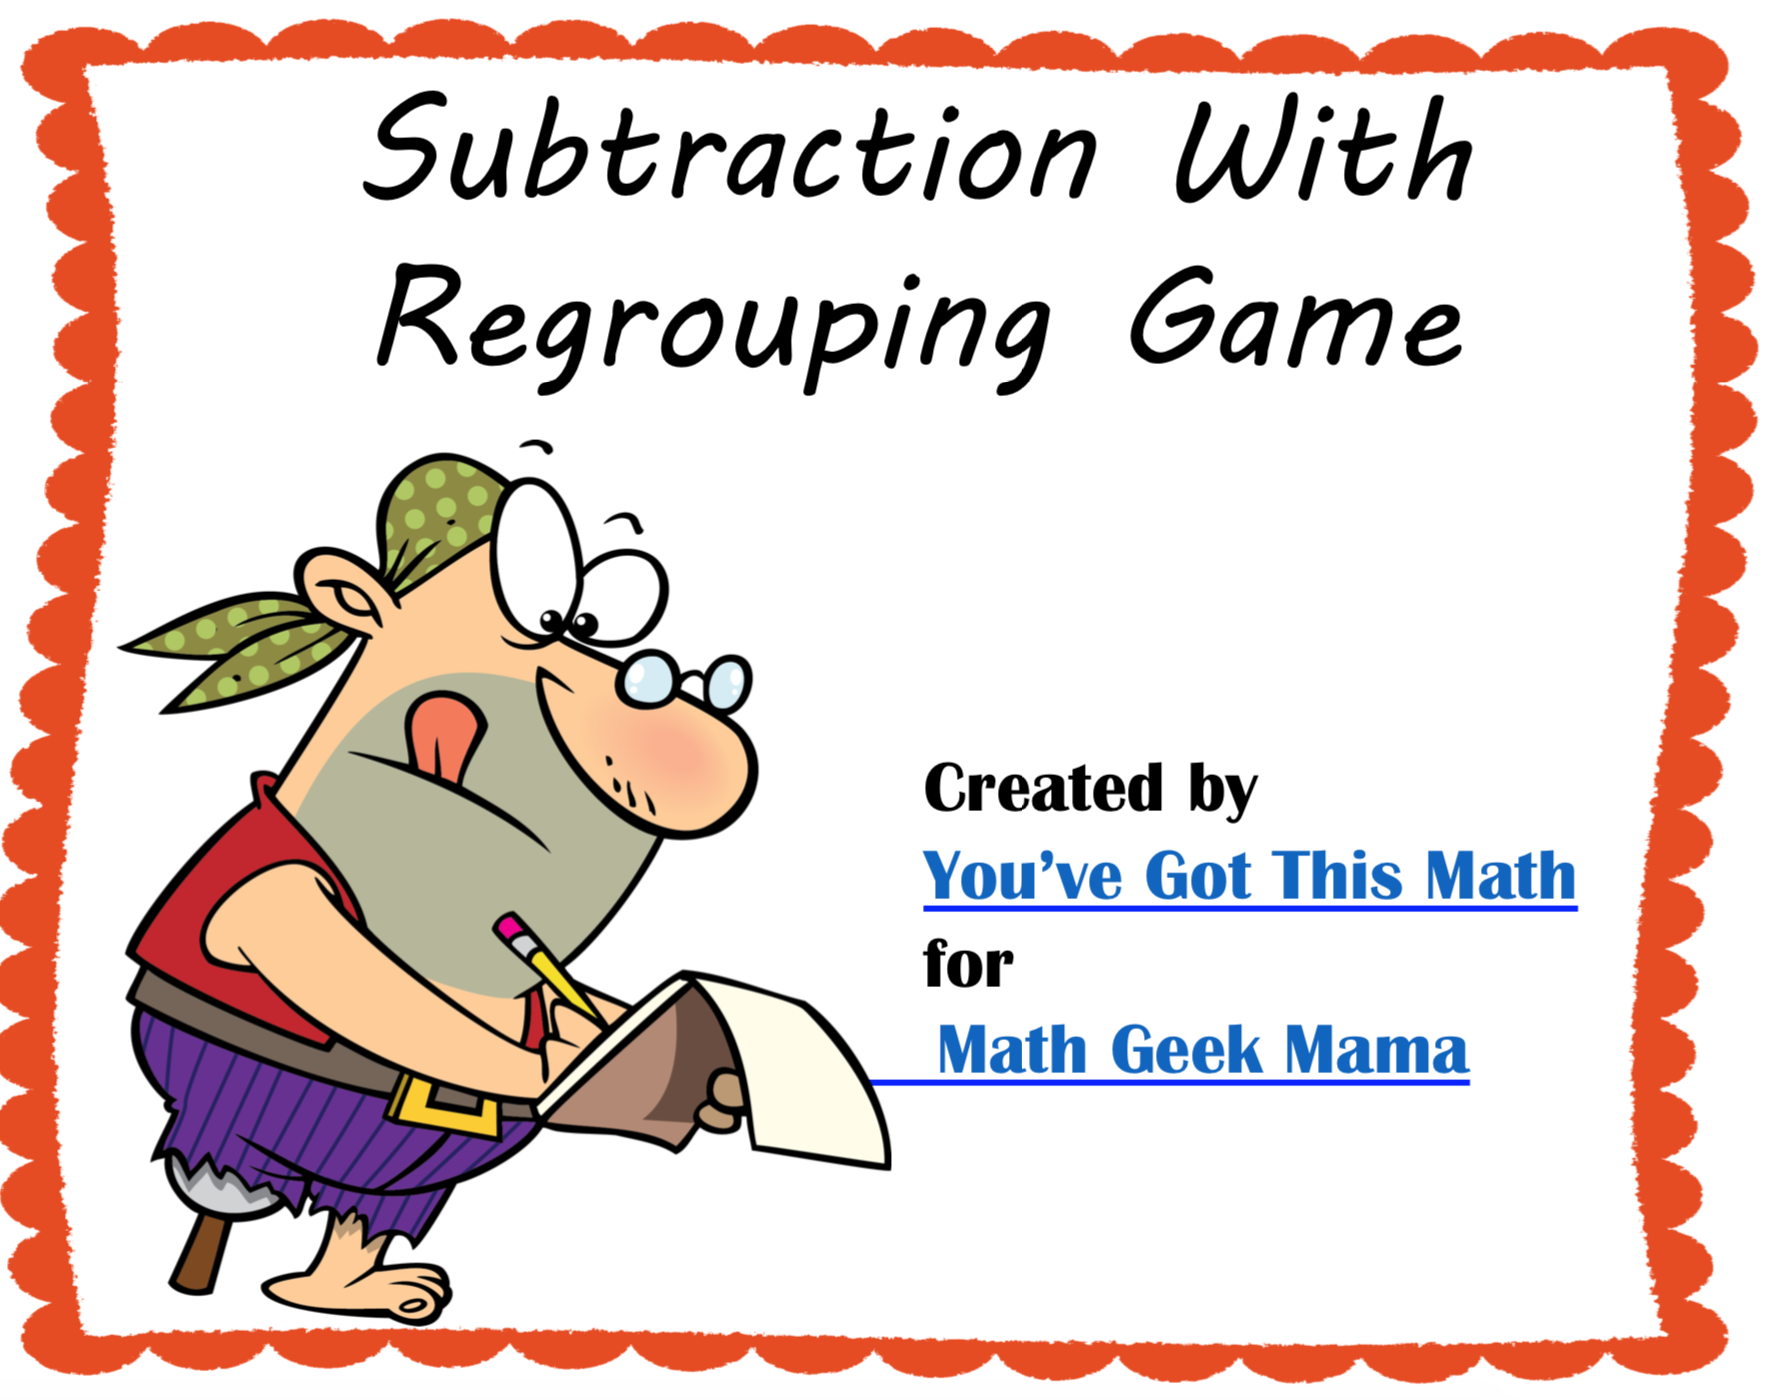 photo relating to Subtraction With Regrouping Games Printable named No cost 3-Digit Subtraction with Regrouping Match